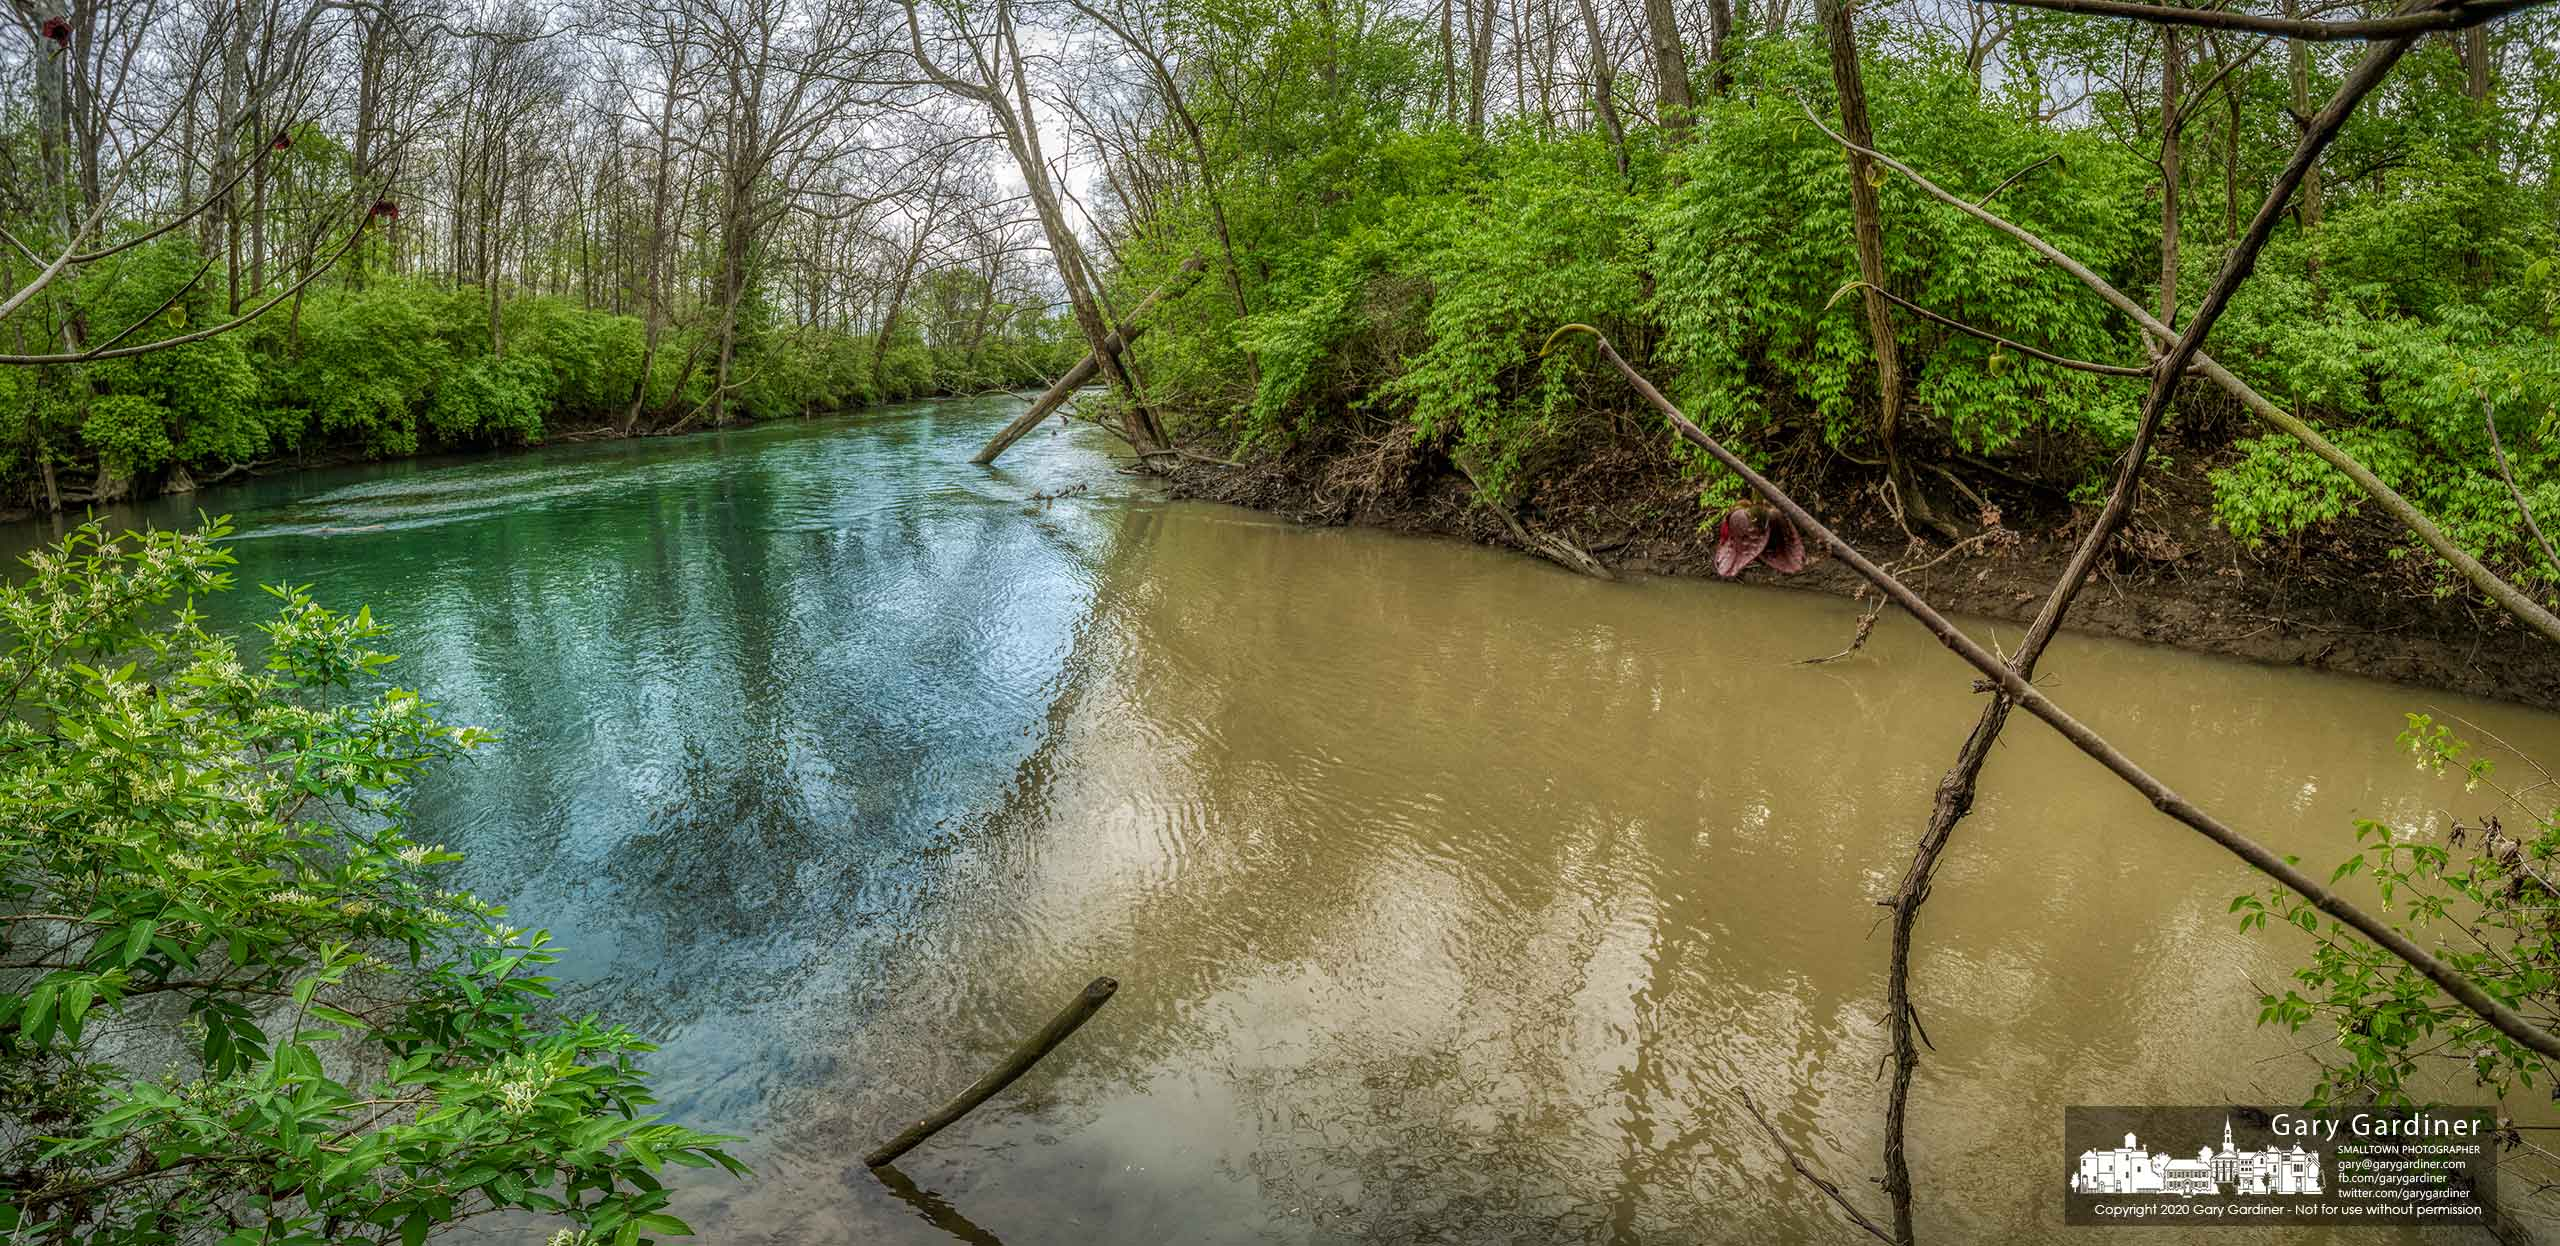 Runoff from Spring Run mixes with the clear waters of Alum Creek where they connect along Cooper Road. My Final Photo for May 8, 2020.